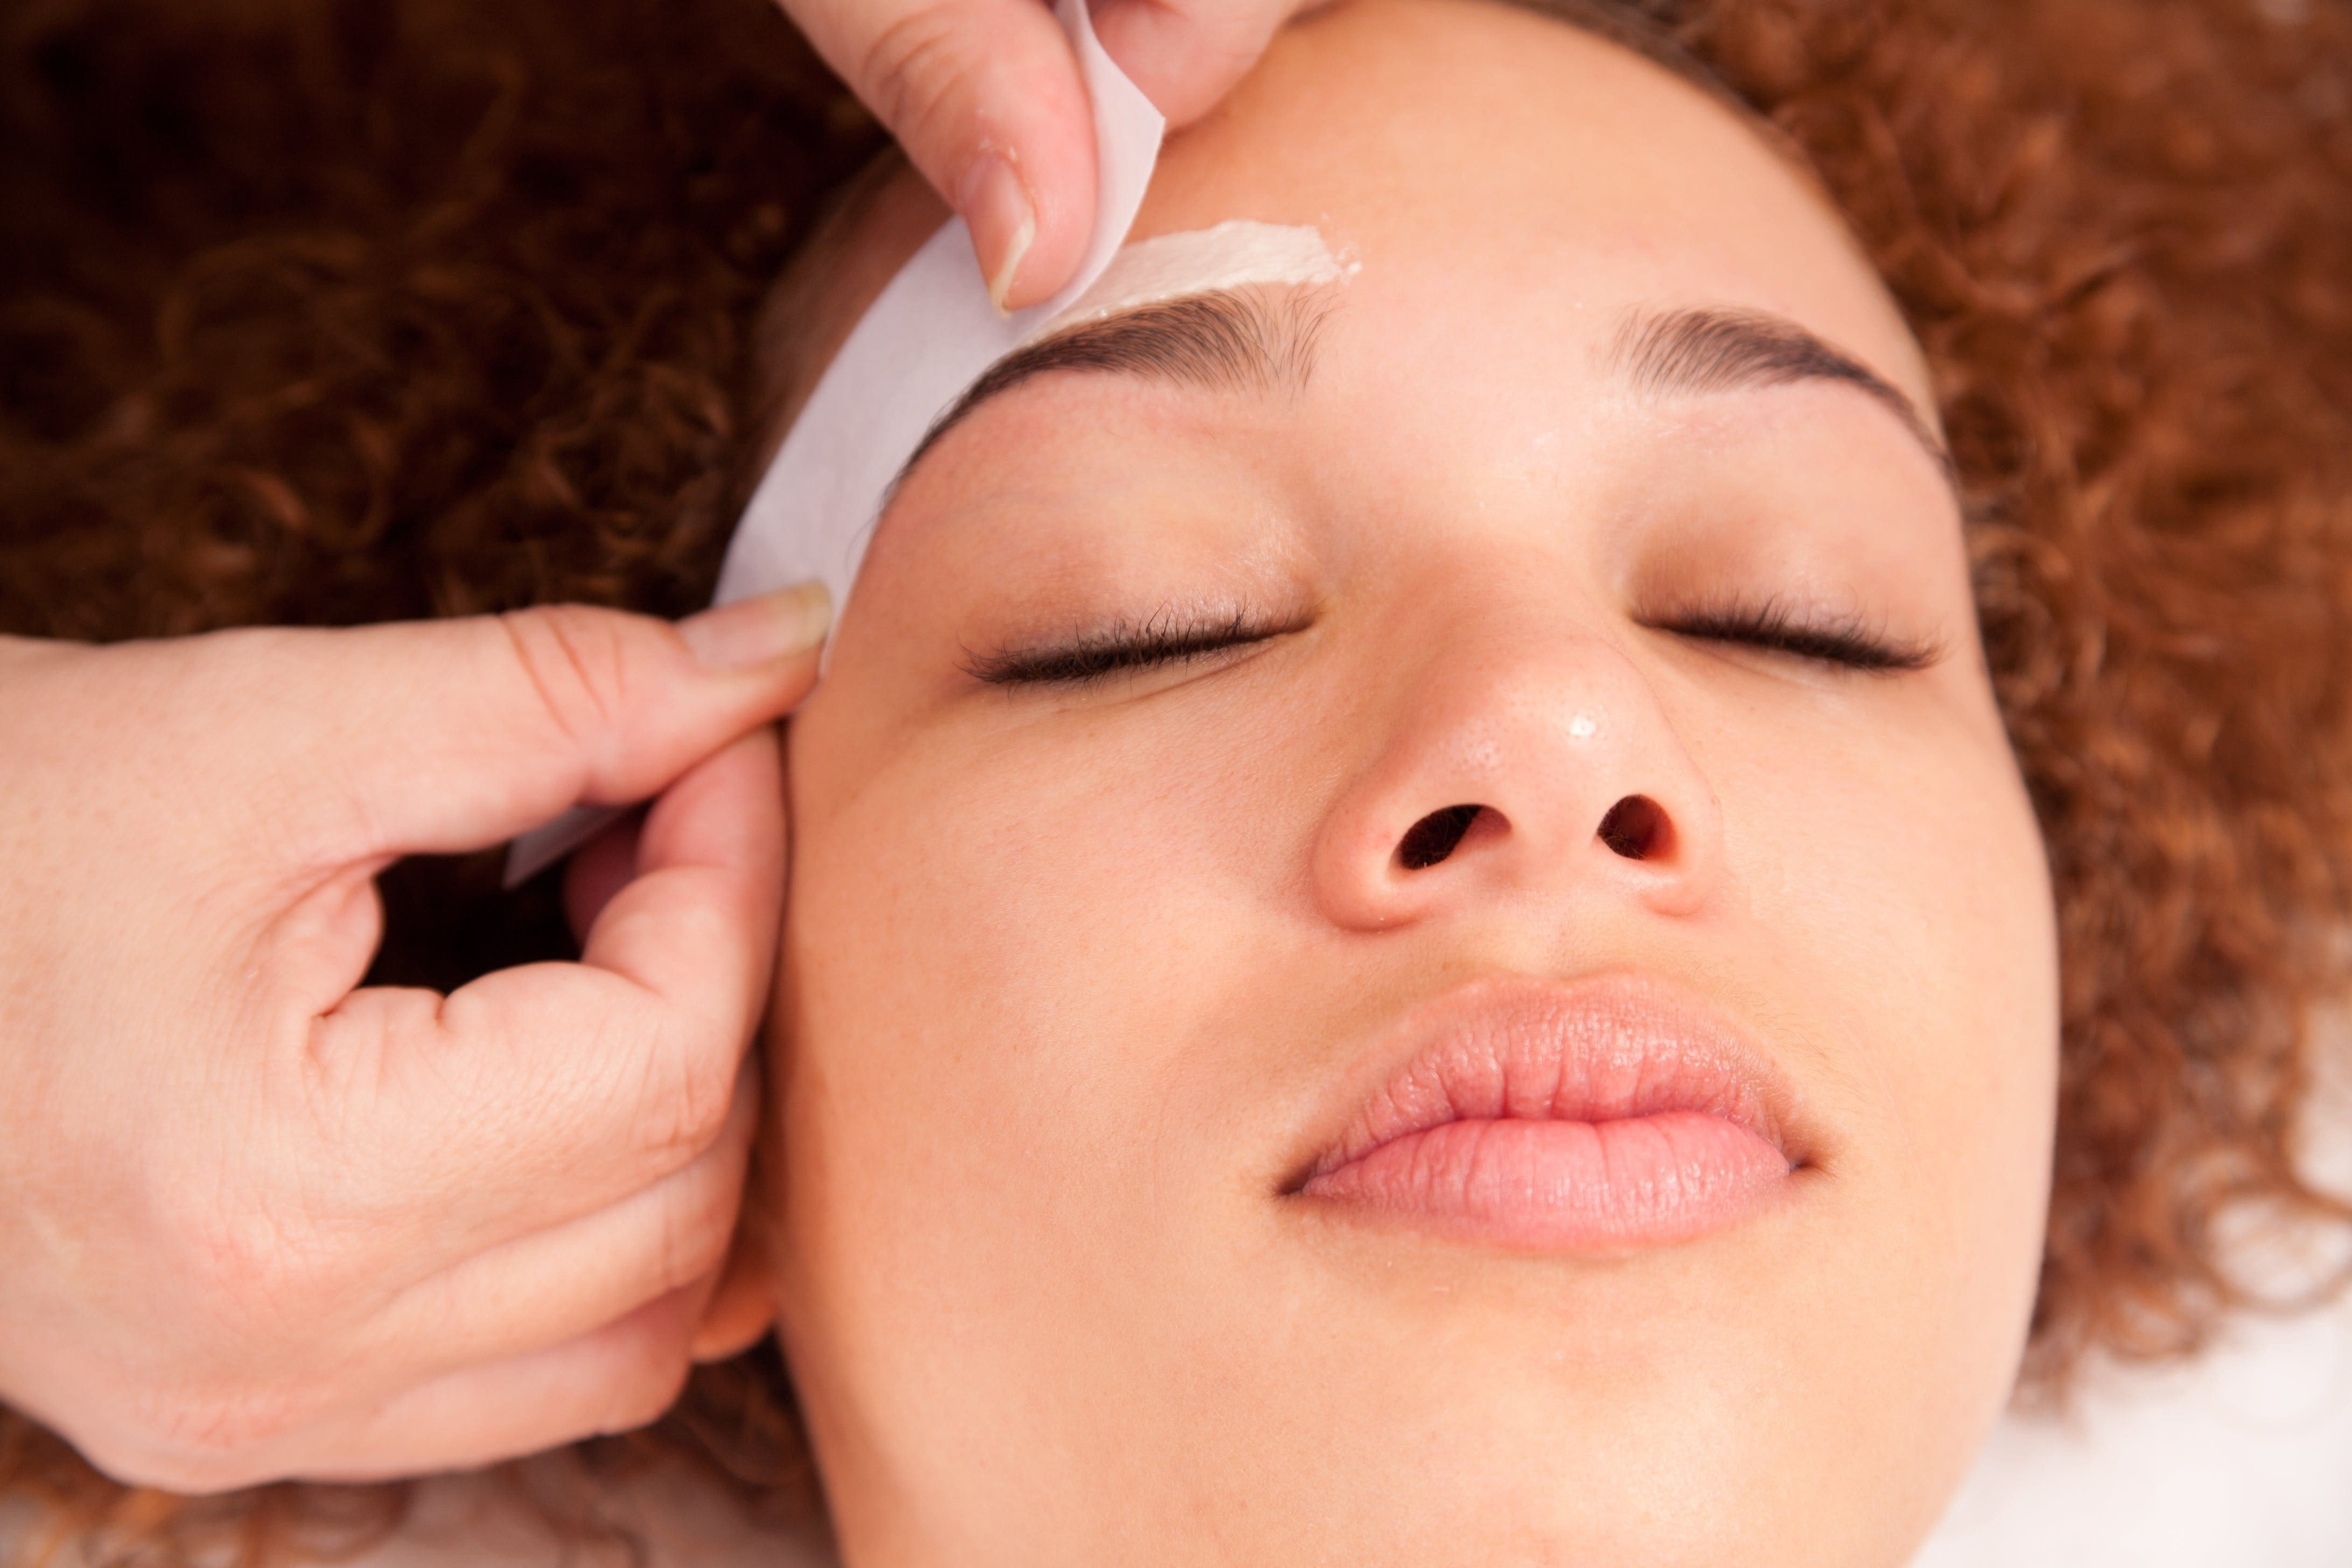 close up of a woman having her eyebrows waxed.